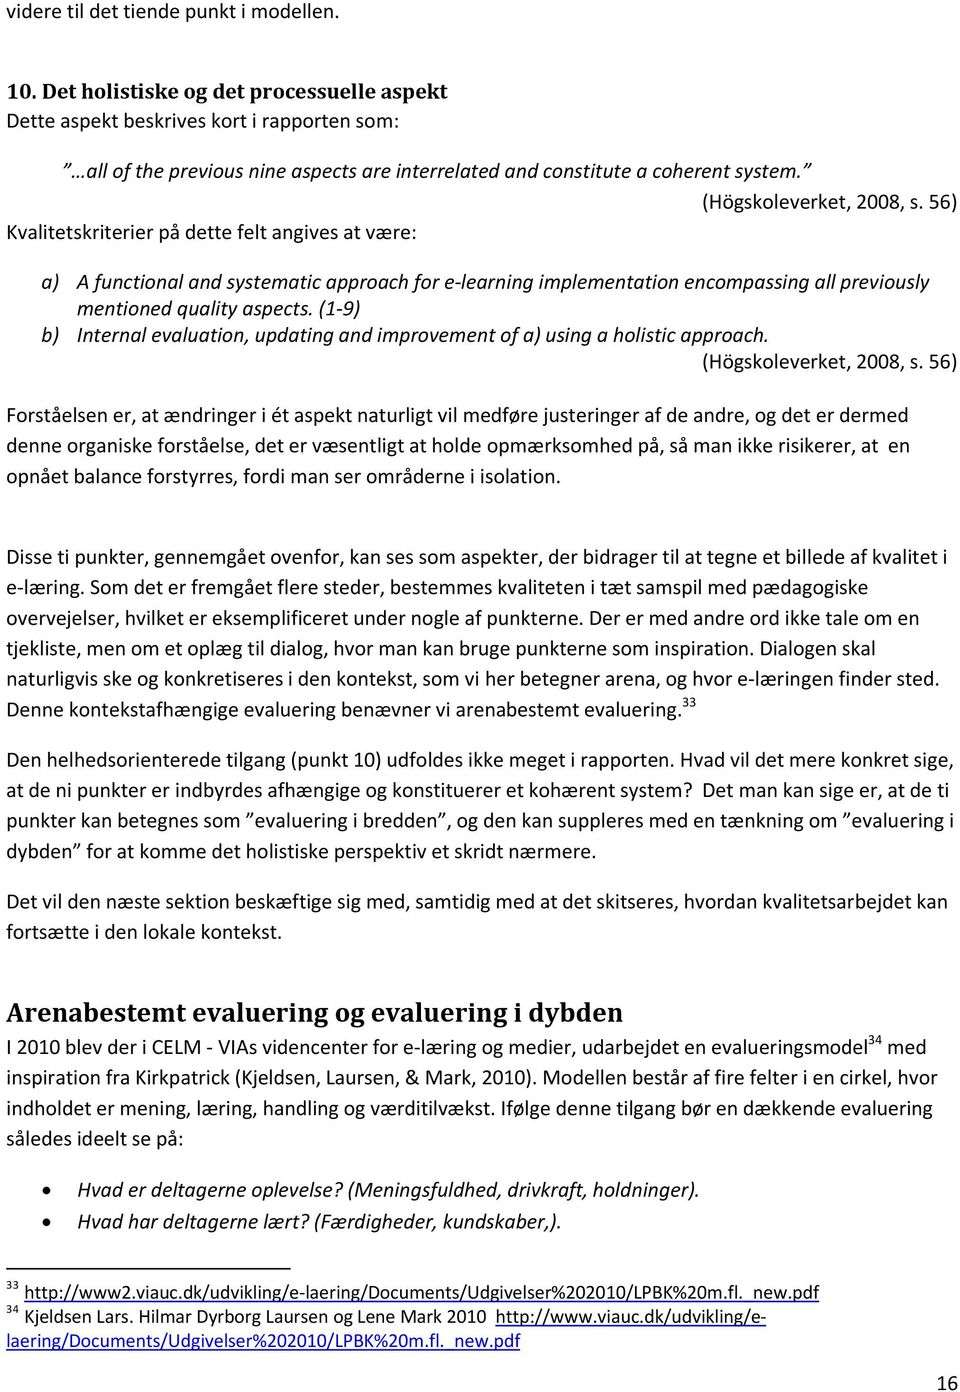 56) Kvalitetskriterier pä dette felt angives at våre: a) A functional and systematic approach for e-learning implementation encompassing all previously mentioned quality aspects.